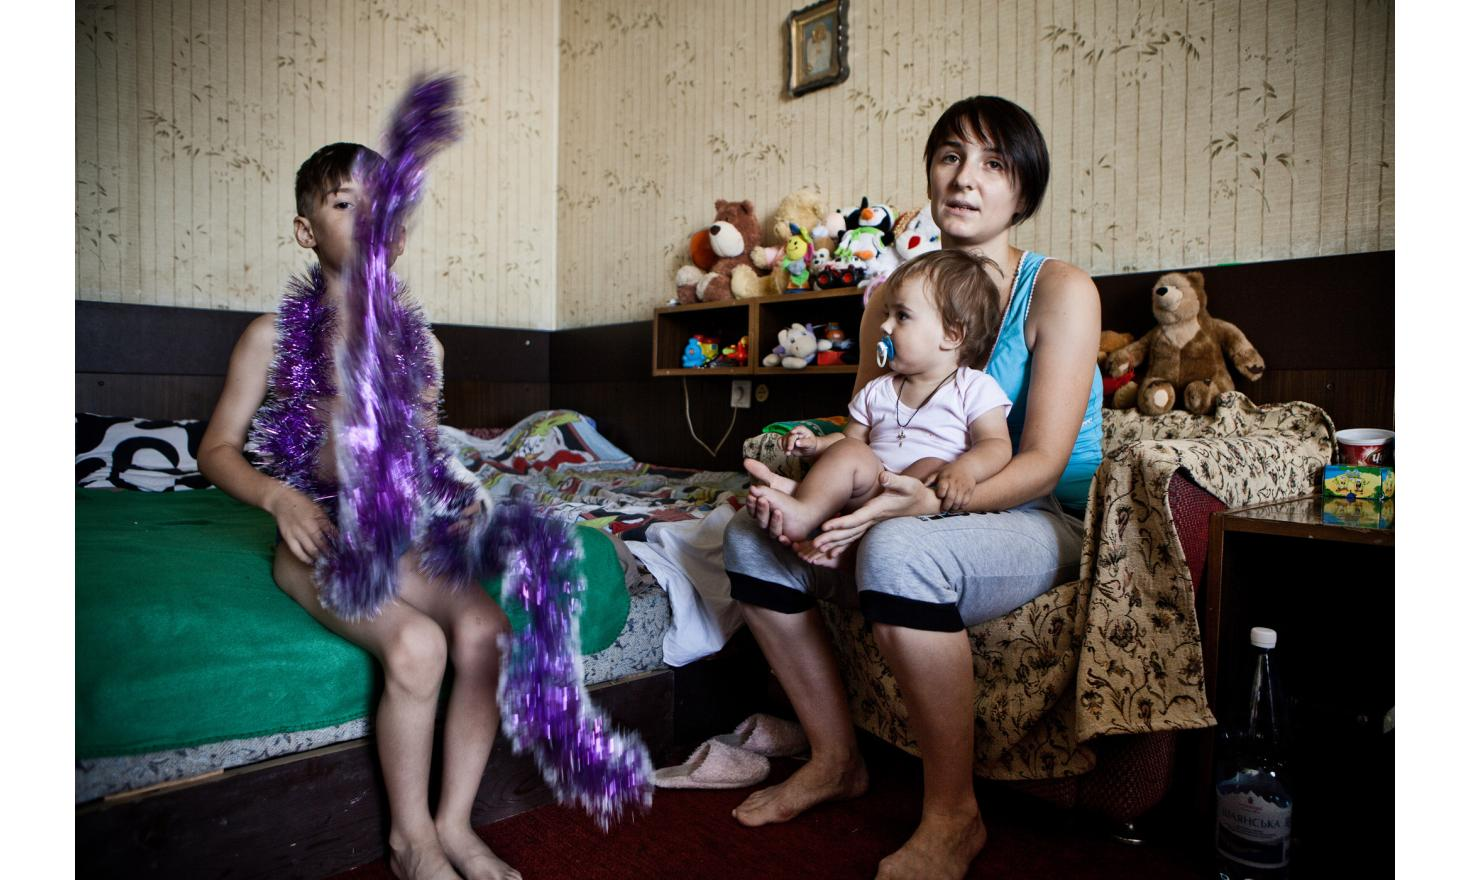 """Svetlana (25 years) her sons Serioja (9 years) and Anatolik (11 months).  """"To protect the children""""': Svetlana left eastern Ukraine with her first son, while she was pregnant [...] - Contact the agency for complete testimonies of families -"""